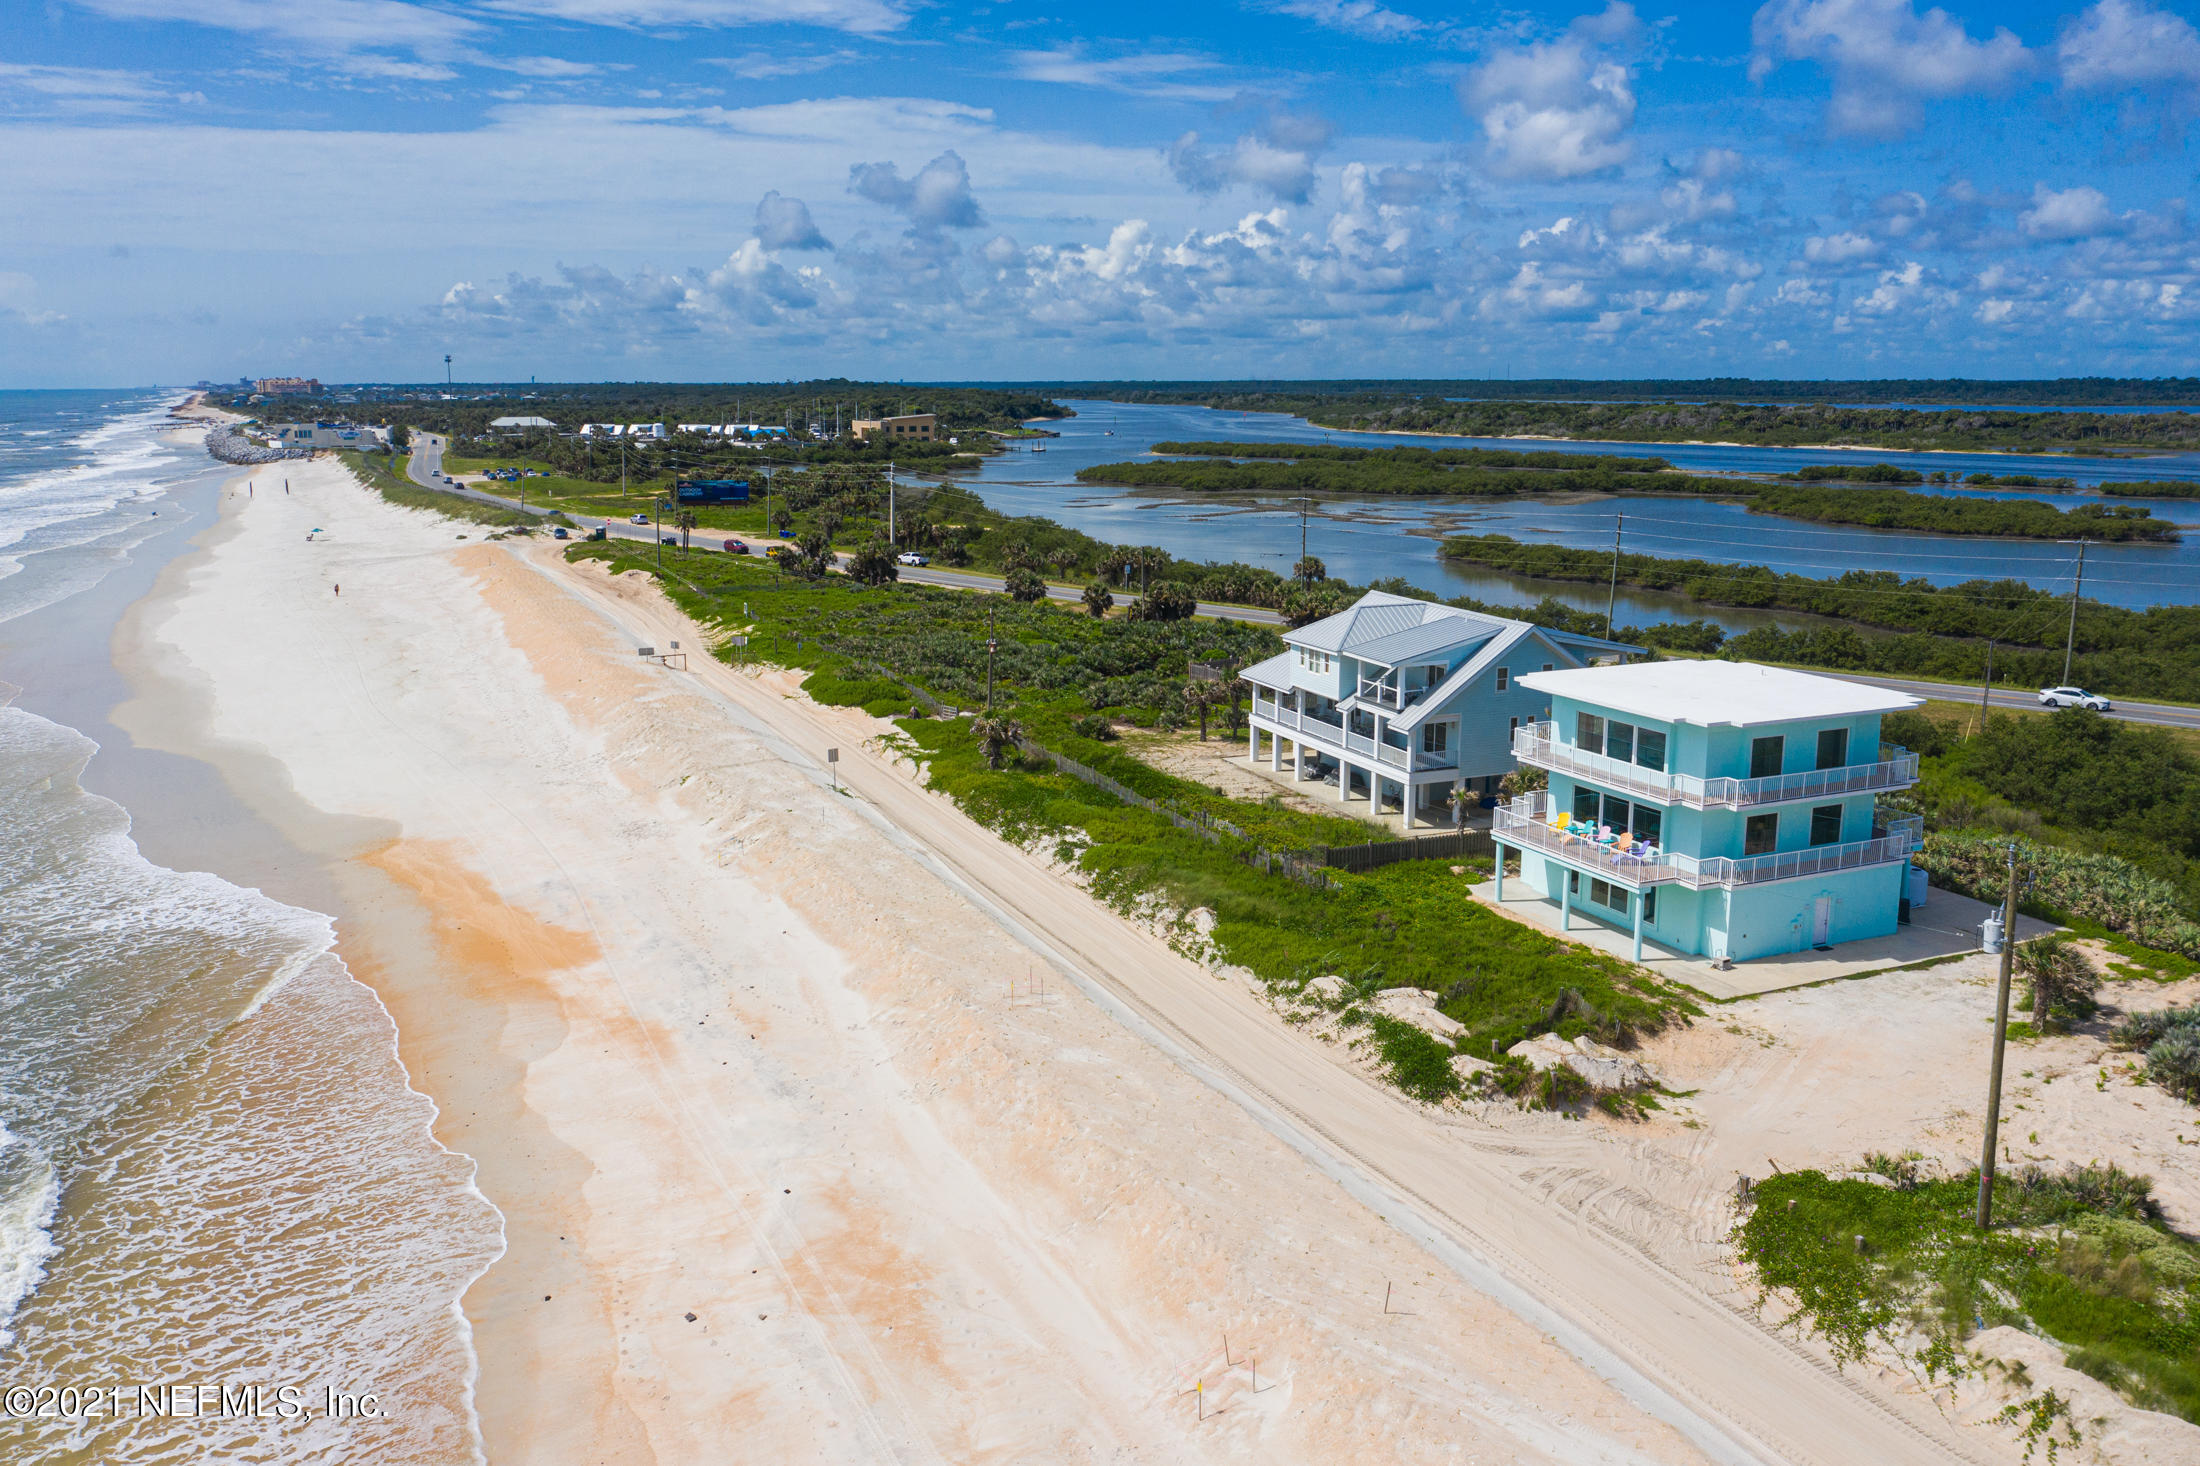 Straight out of Luxury Living magazine is this one-of-a-kind property offering over 1/2 acre of pristine and undisturbed ocean, Intracoastal, and marsh views.  Located on 120 feet of direct oceanfront, this 3bd/3.5 bath custom home with top-of-the-line finishes, has wrap around porches on the 2nd and 3rd floors to take advantage of all the Old Florida lifestyle has to offer.  Built in 2003, this steel and concrete structure has a piling system 60 feet deep, there are brand new hurricane impact windows throughout, and a new Rhino Shield flat roof as well as Rhino Shield exterior paint. The interior is thoughtfully planned with the entire master bedroom suite on the 3rd floor, living room, sitting room, dining room, kitchen and laundry on the 2nd floor and 2 guest bedrooms and bathrooms along with secondary living room/game room with kitchenette on the 1st floor.   If you crave something different with once in a lifetime views, then this is the property for you!